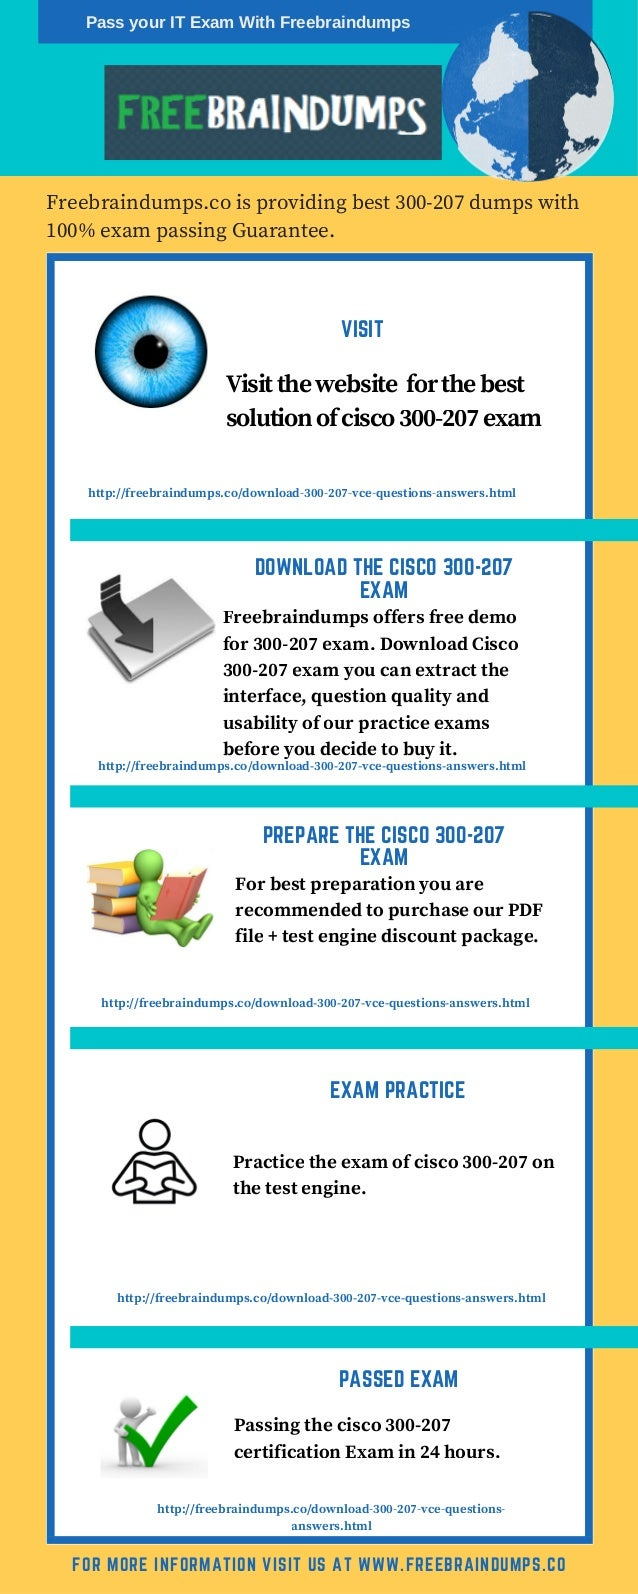 VISIT Freebraindumps.co is providing best 300-207 dumps with 100% exam passing Guarantee. FOR MORE INFORMATION VISIT US AT...